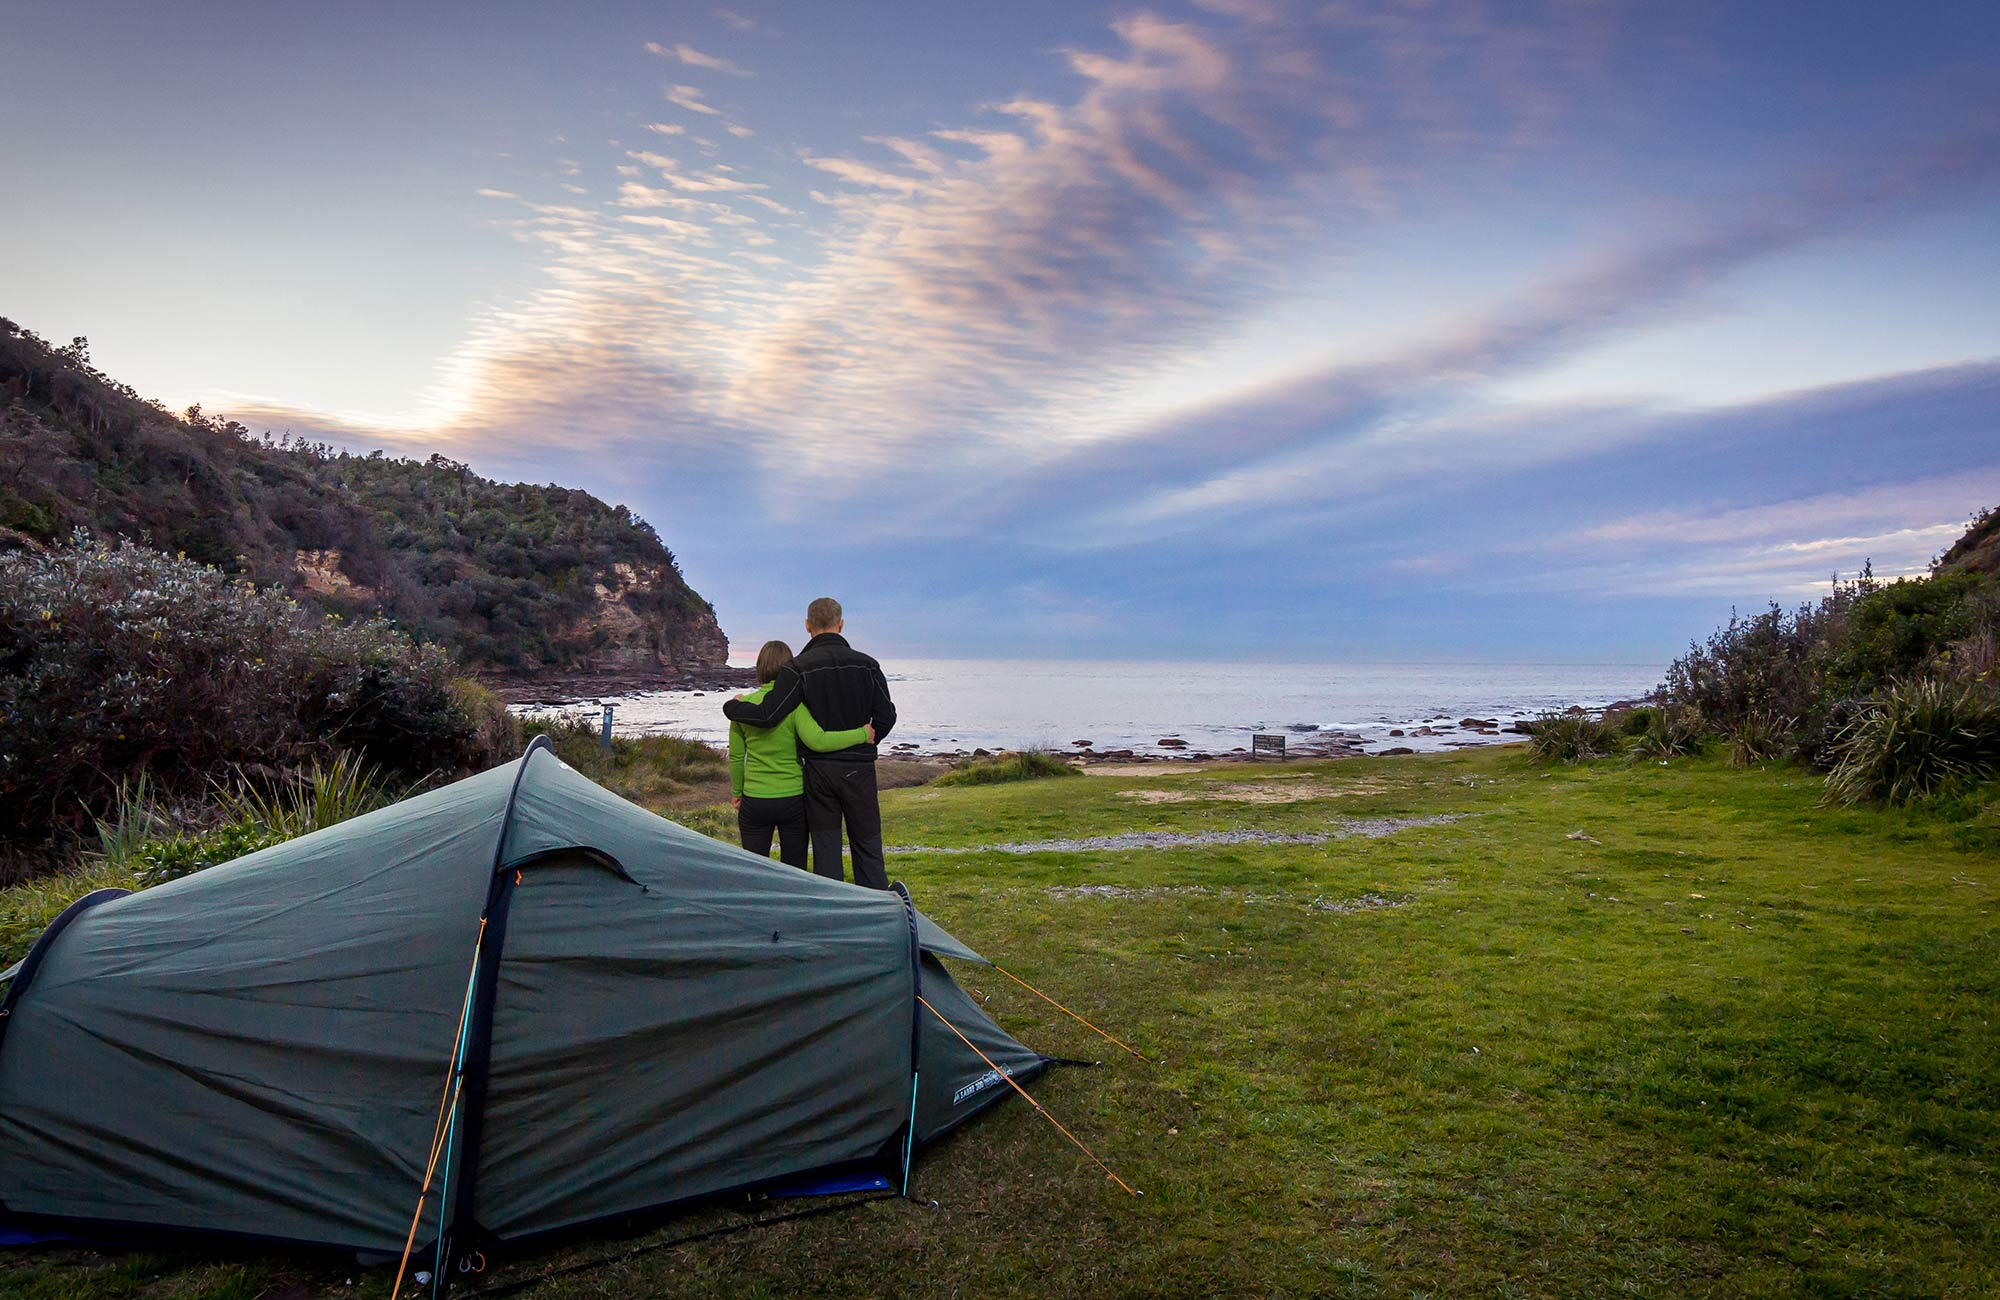 Sydney camping. Photo: eduardo-martinez